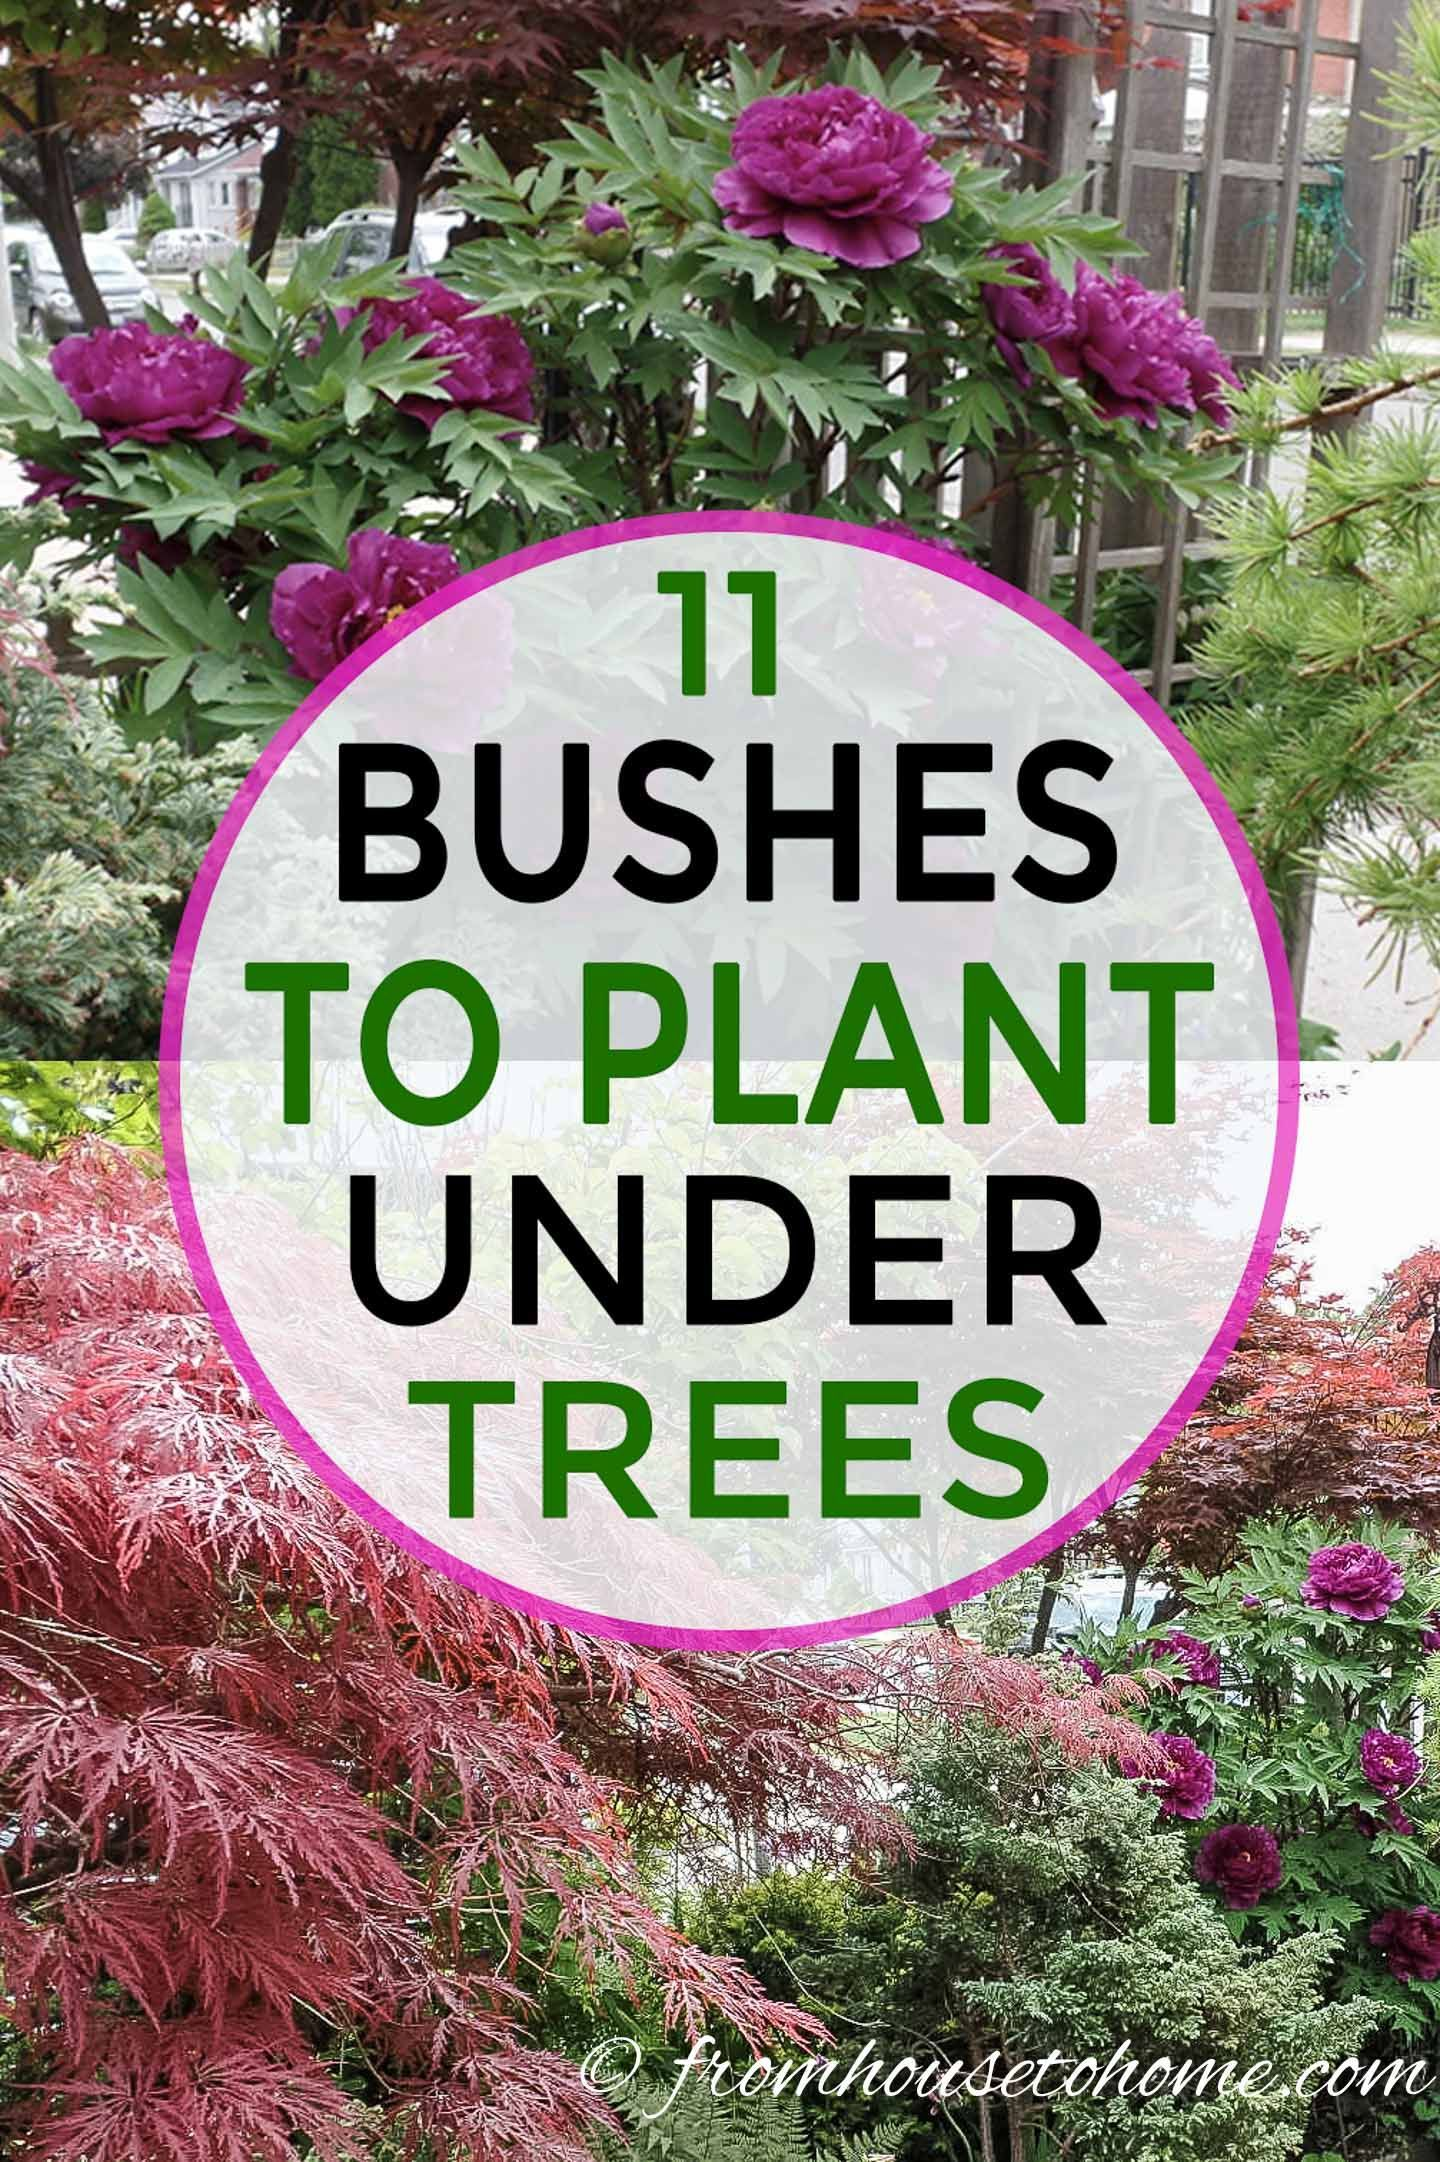 shrubs for shade on shade loving shrubs the best bushes to plant under trees gardening from house to home shade loving shrubs plants under trees shade garden plants shade loving shrubs plants under trees